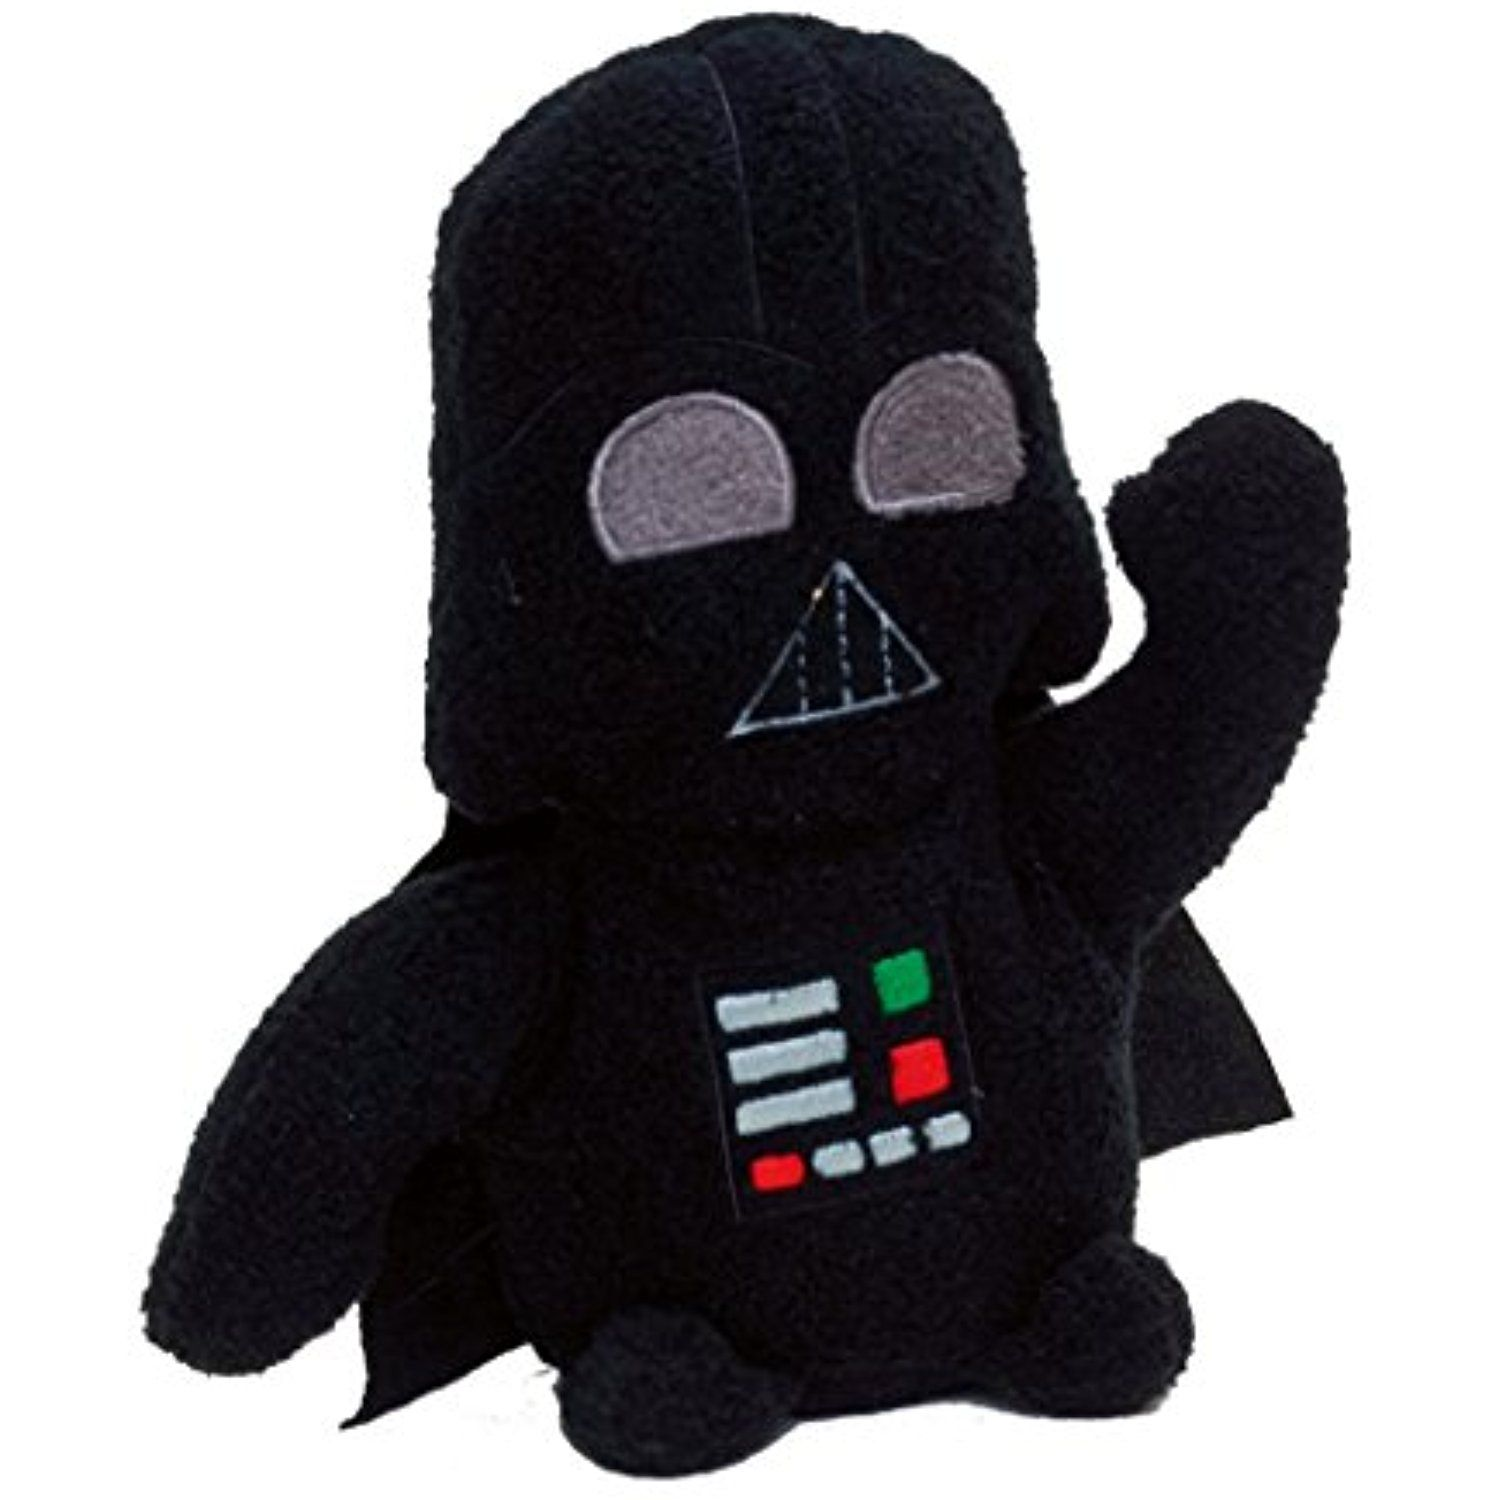 Comic Images Footzeez Darth Vader Plush Toy Continue To The